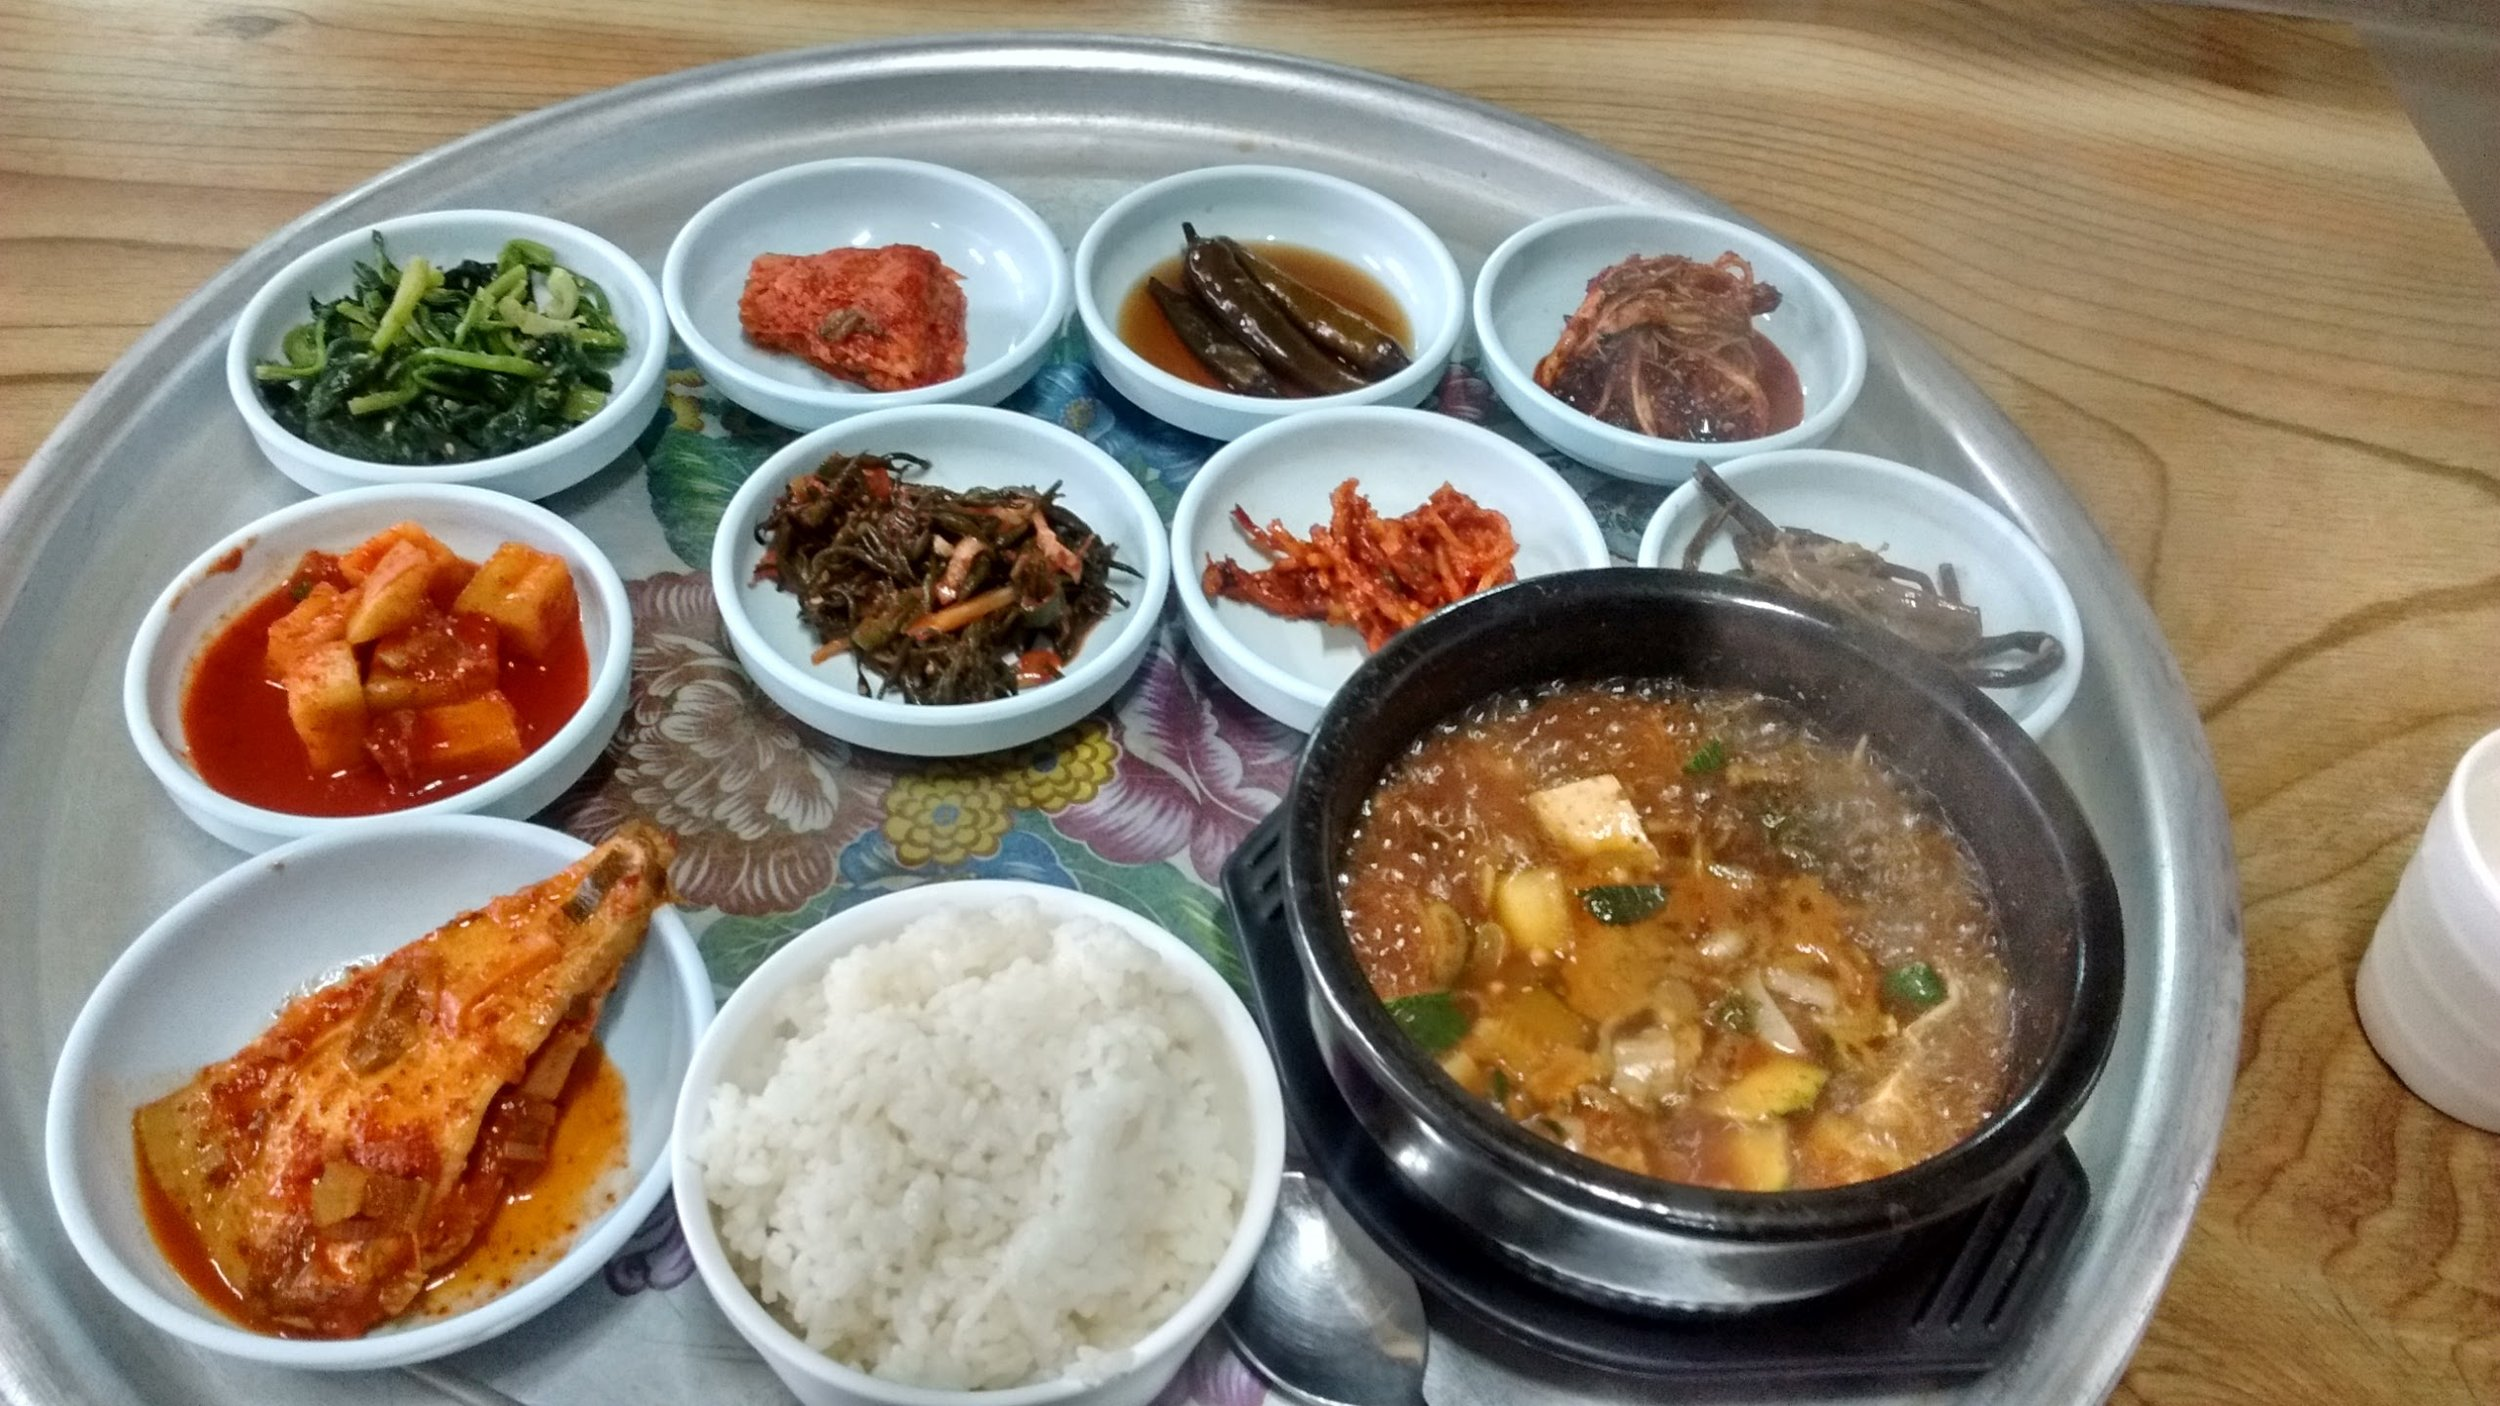 A typical Korean dinner. Total: $6